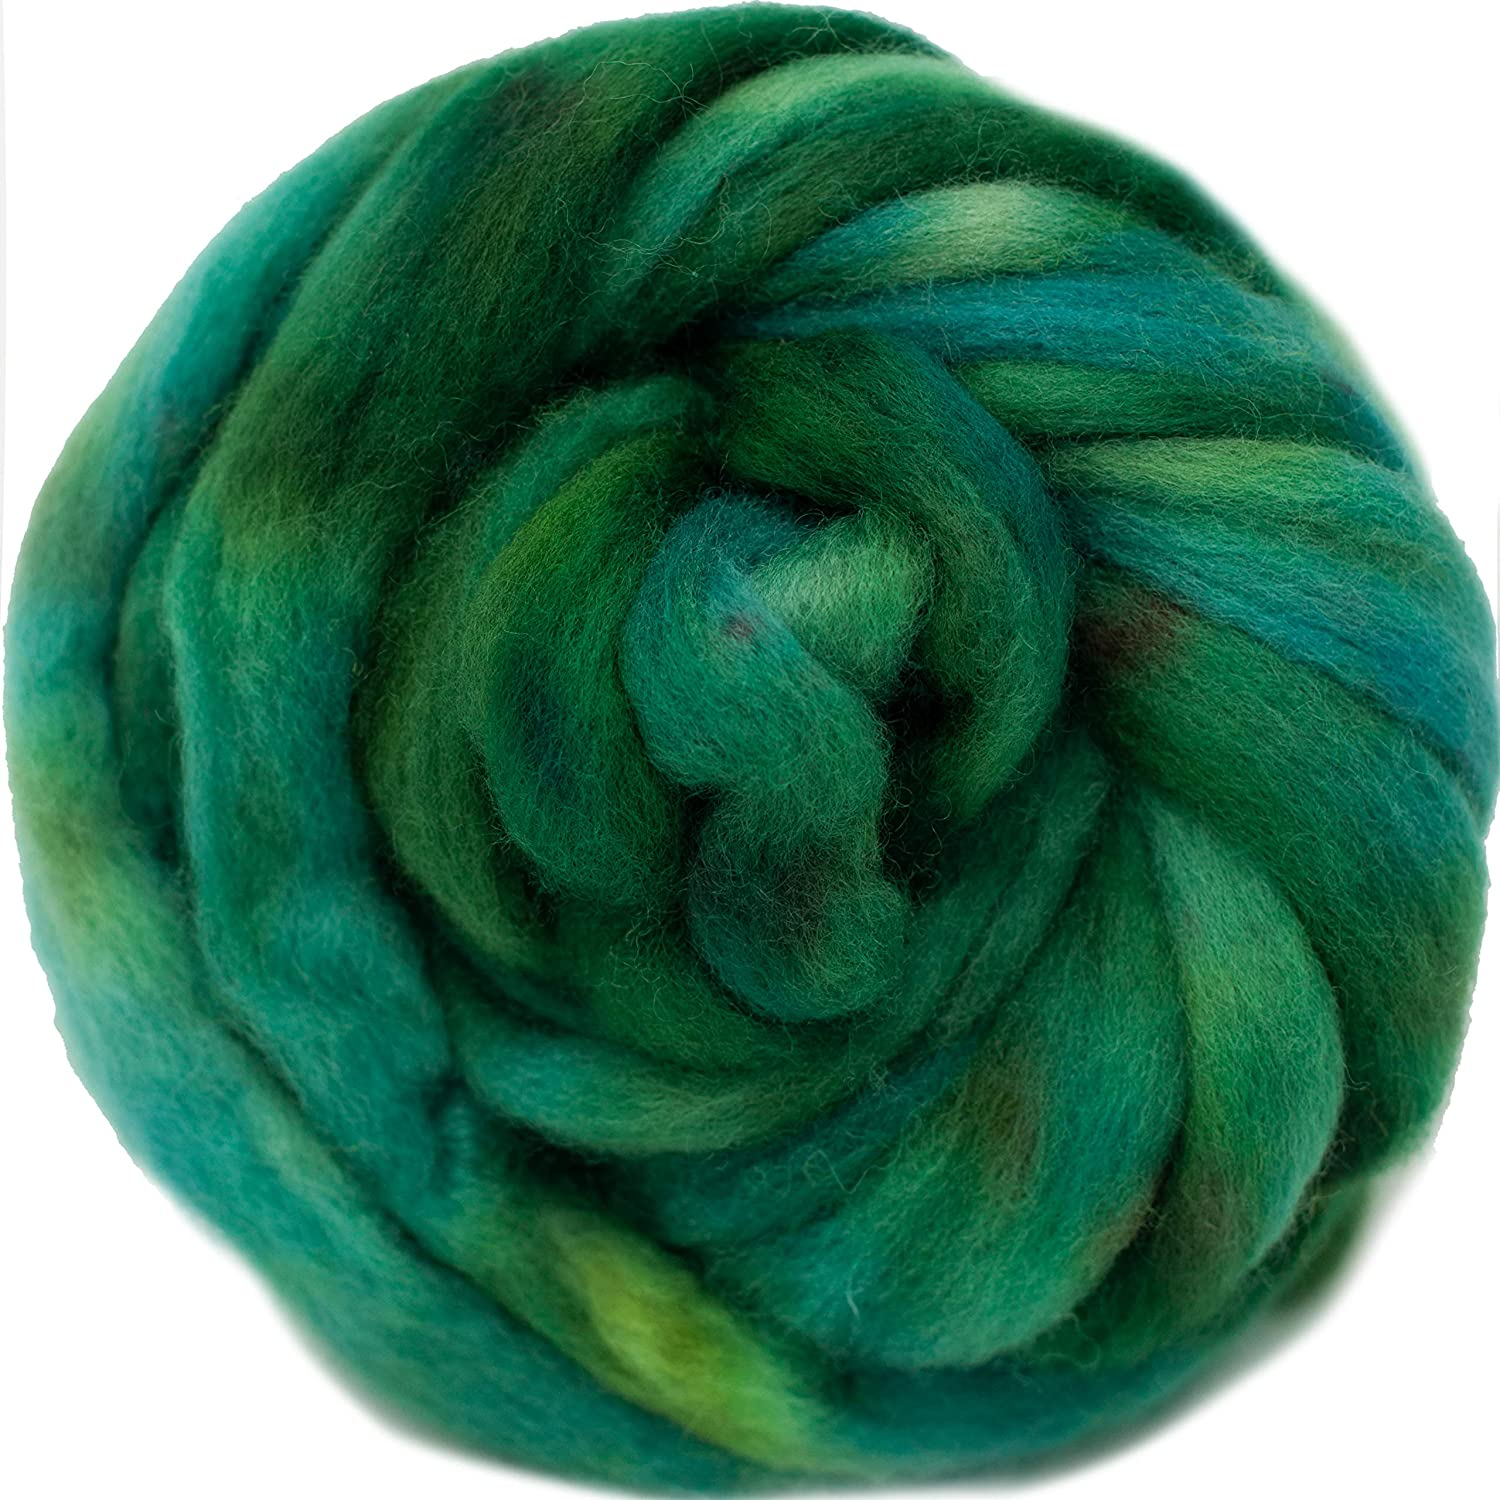 Cash special price Wool Roving Hand Dyed. Super Soft Combed Top BFL Outstanding for Pre-Drafted